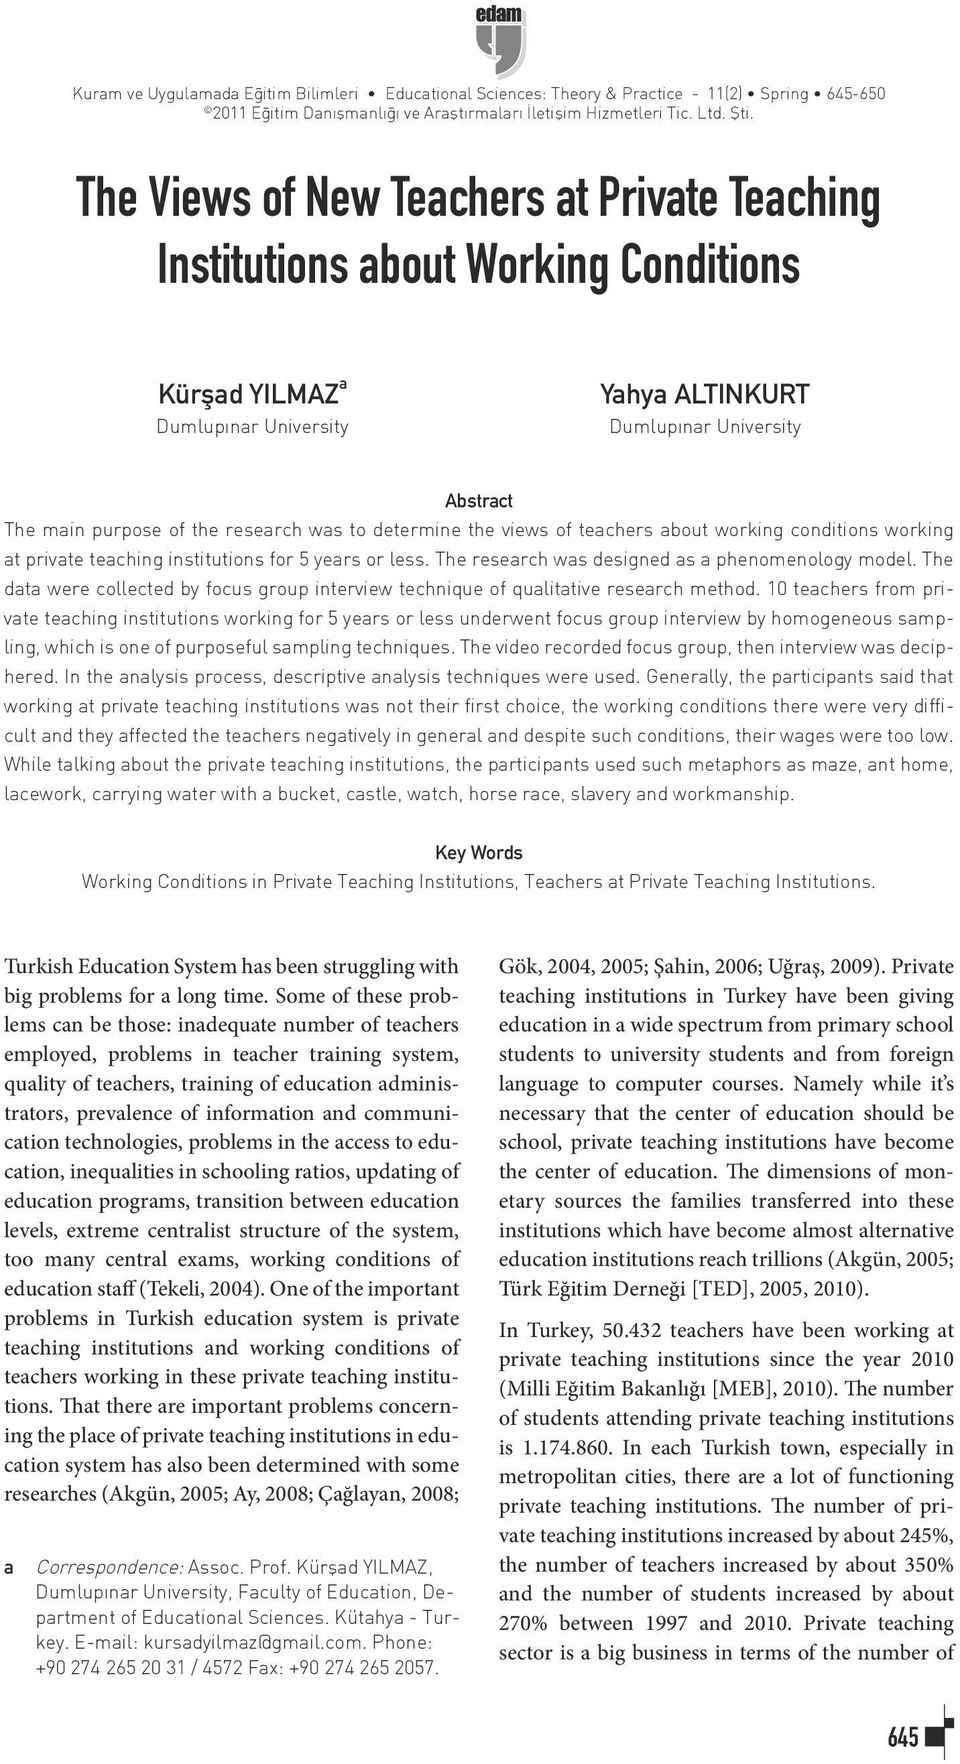 research was to determine the views of teachers about working conditions working at private teaching institutions for 5 years or less. The research was designed as a phenomenology model.